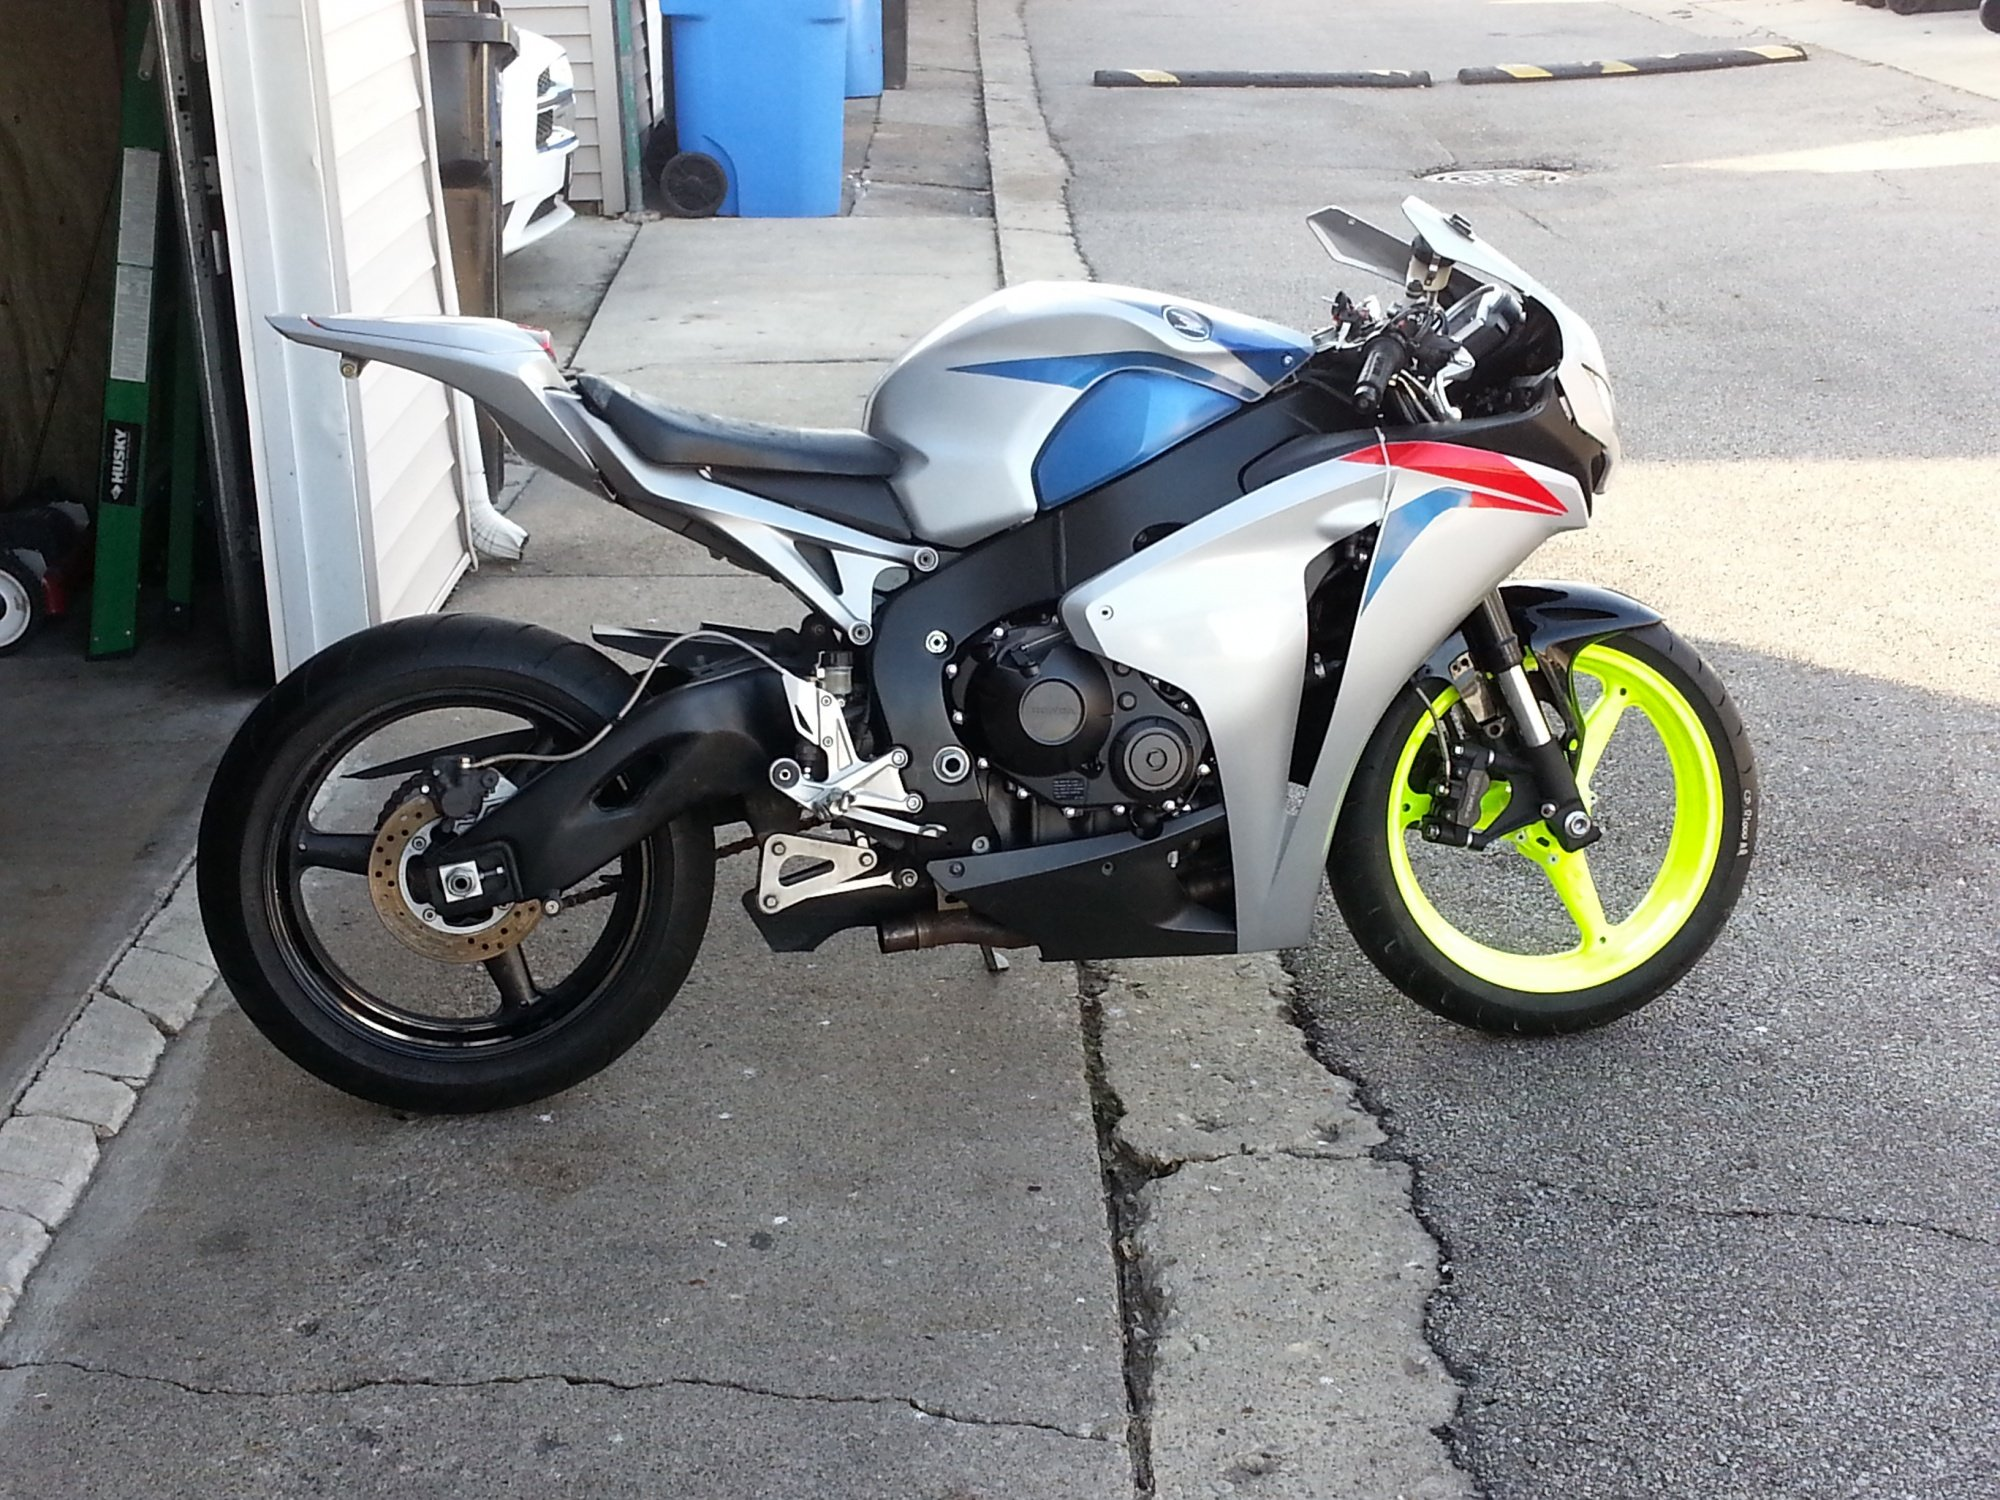 im almost done fixing  my 2008 cbr 1000 i was a trashed bike!-20121129_135834.jpg